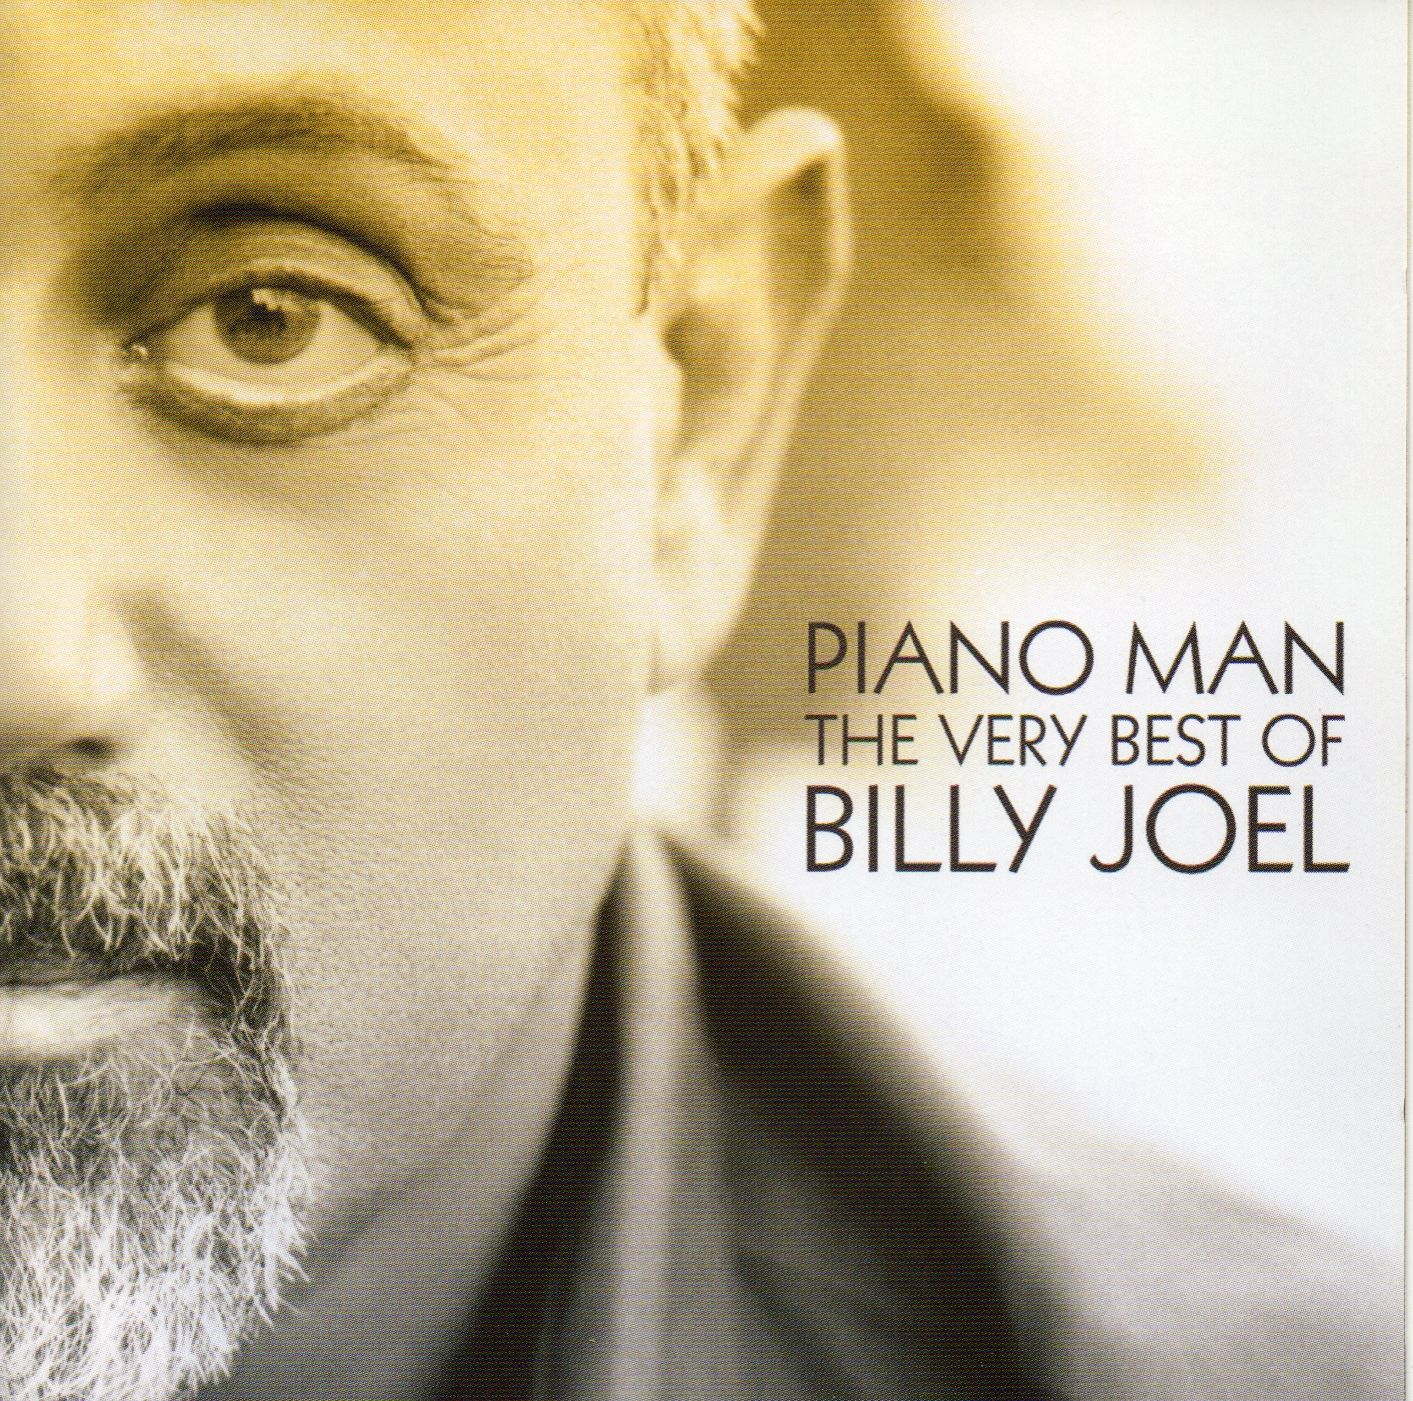 Billy Joel - Piano Man - The Very Best Of album cover